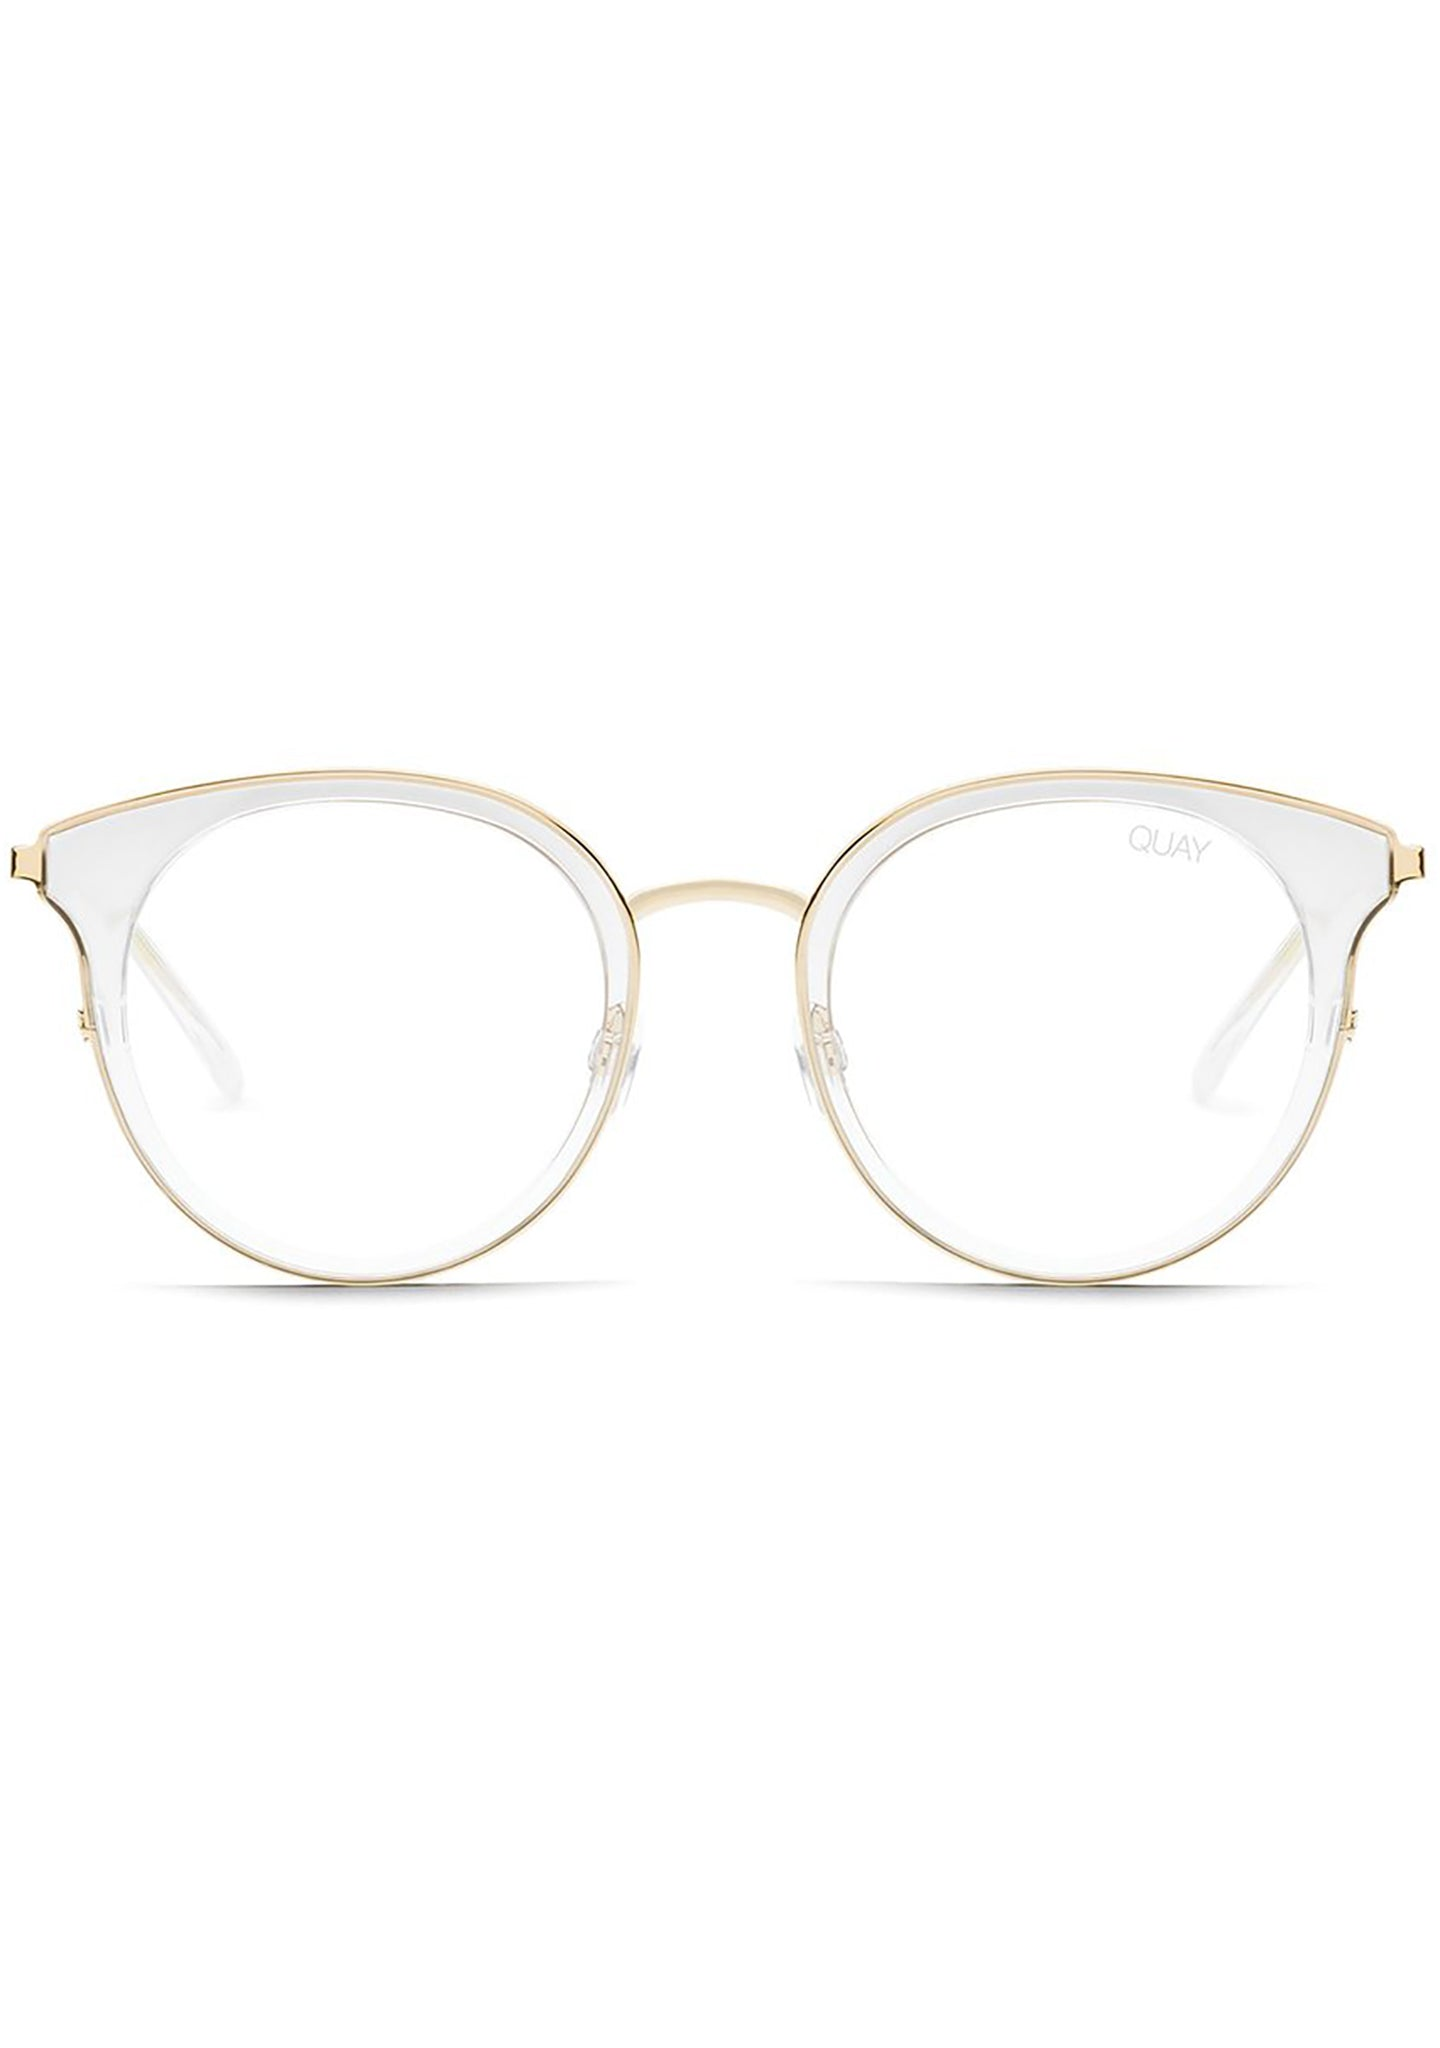 Quay Australia Cryptic Blue Light Glasses in Clear